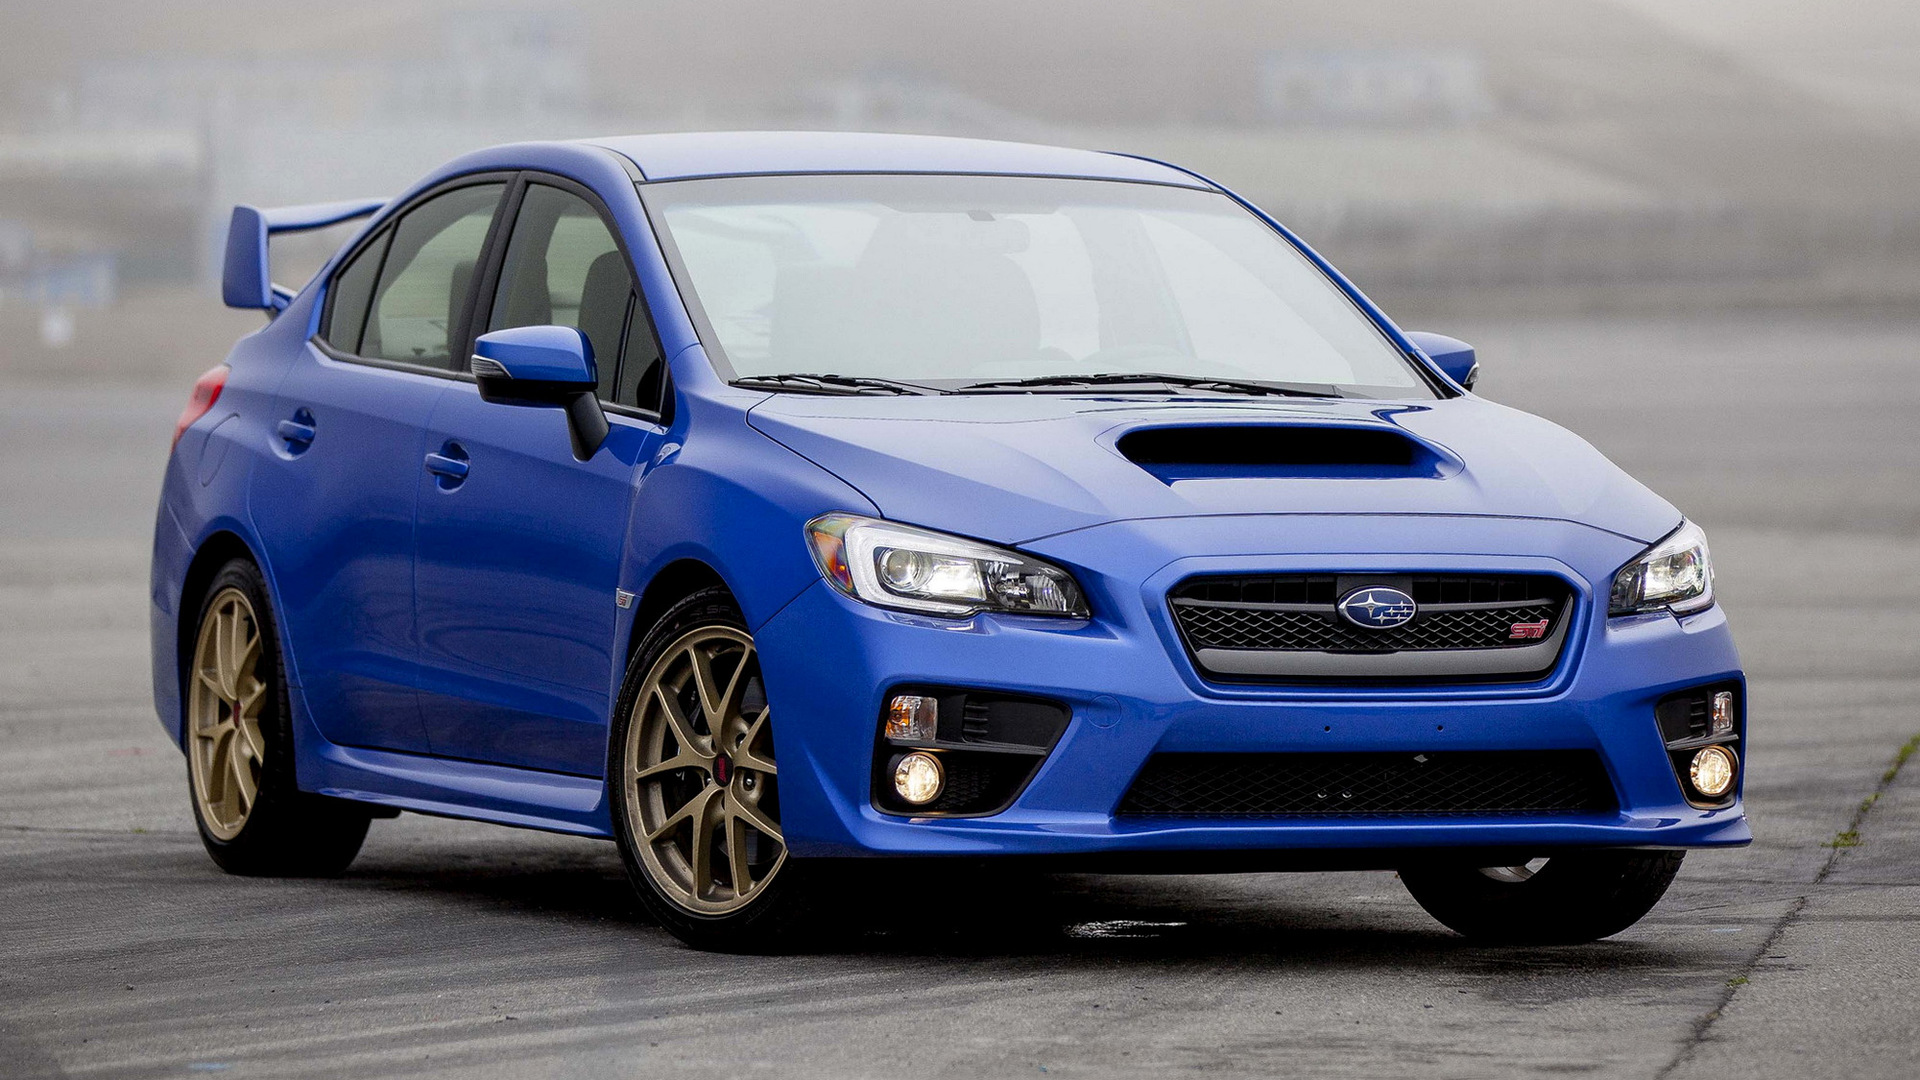 2014 Subaru Wrx Sti Us Wallpapers And Hd Images Car